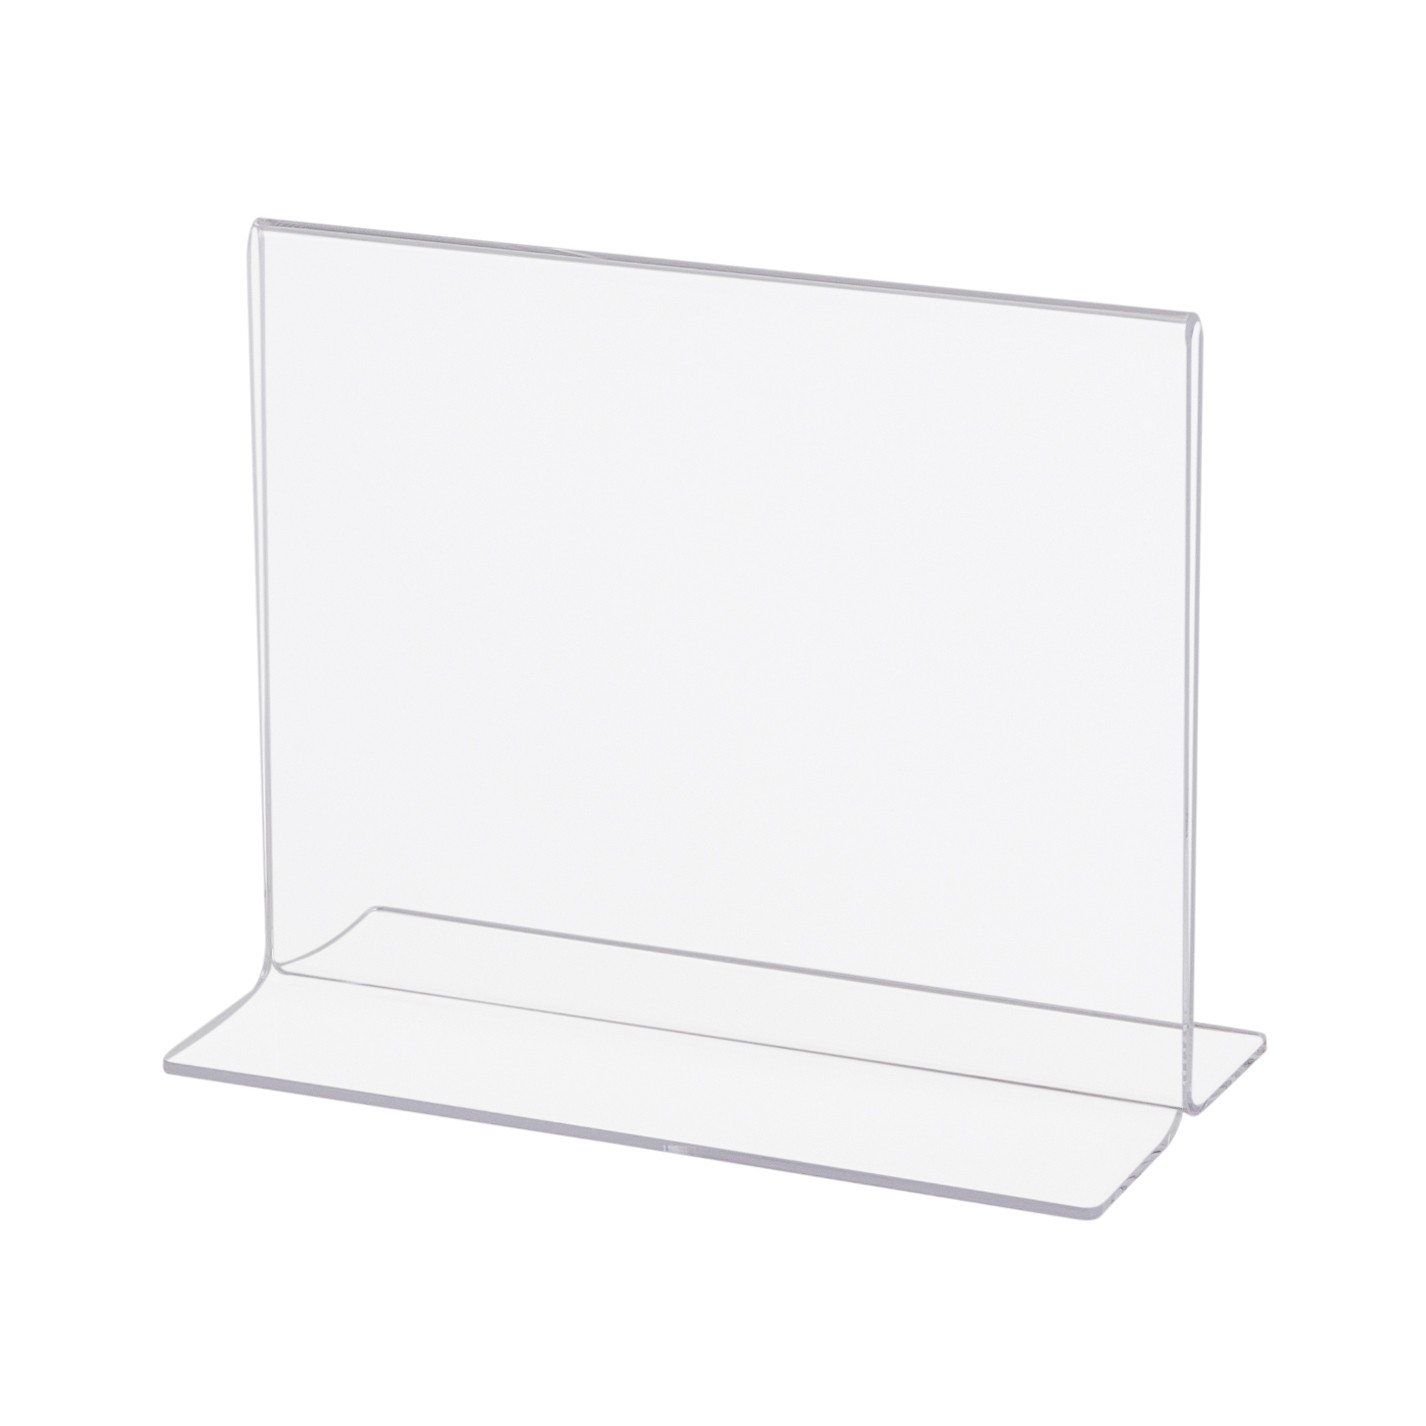 ACRYLIC SIGN A4 7084002-4 HOLDER HORIZONTAL 29.7X21